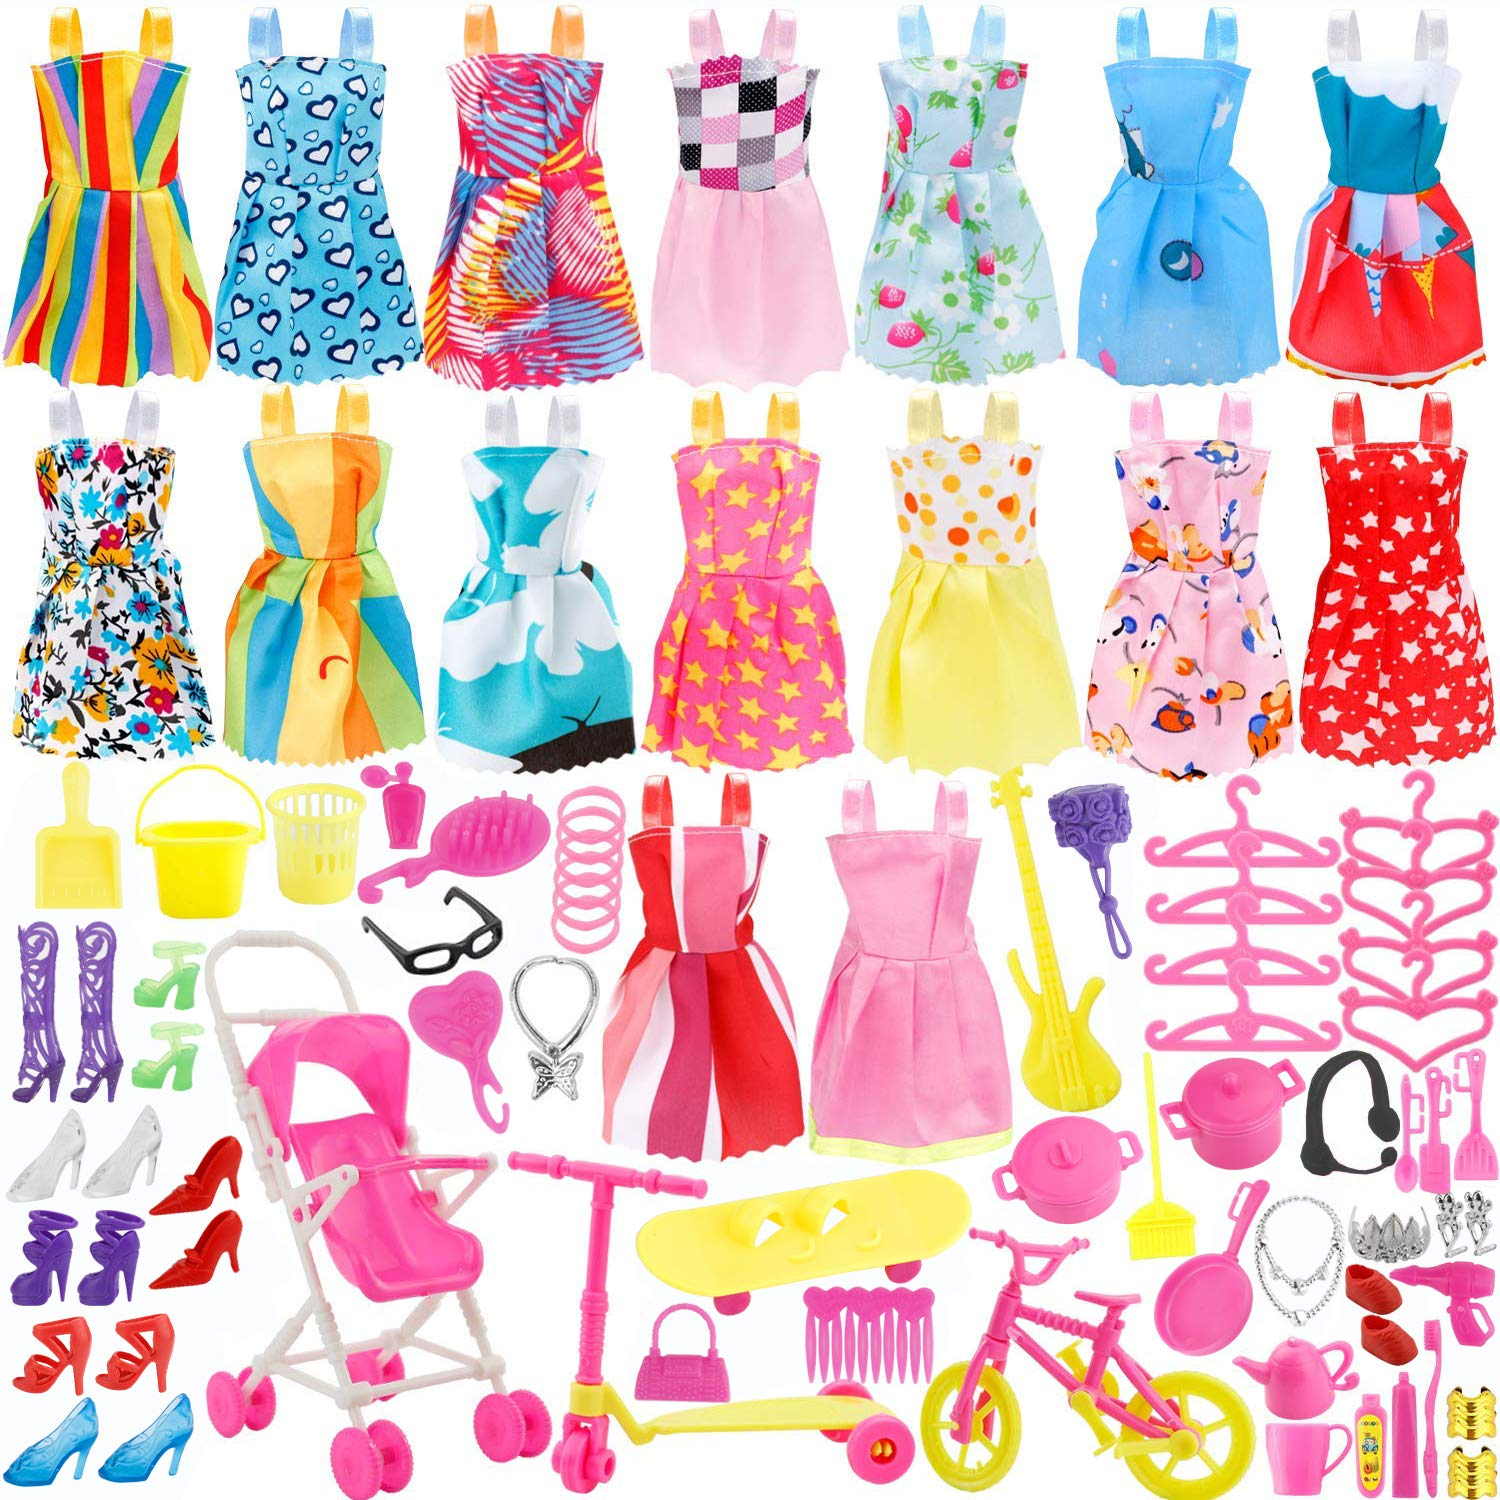 Total 114pcs - 16 Pack Clothes Party Gown Outfits for barbie dolls+ 98pcs Dolls Accessories Shoes Bags Necklace Mirror Hanger Tableware JANYUN